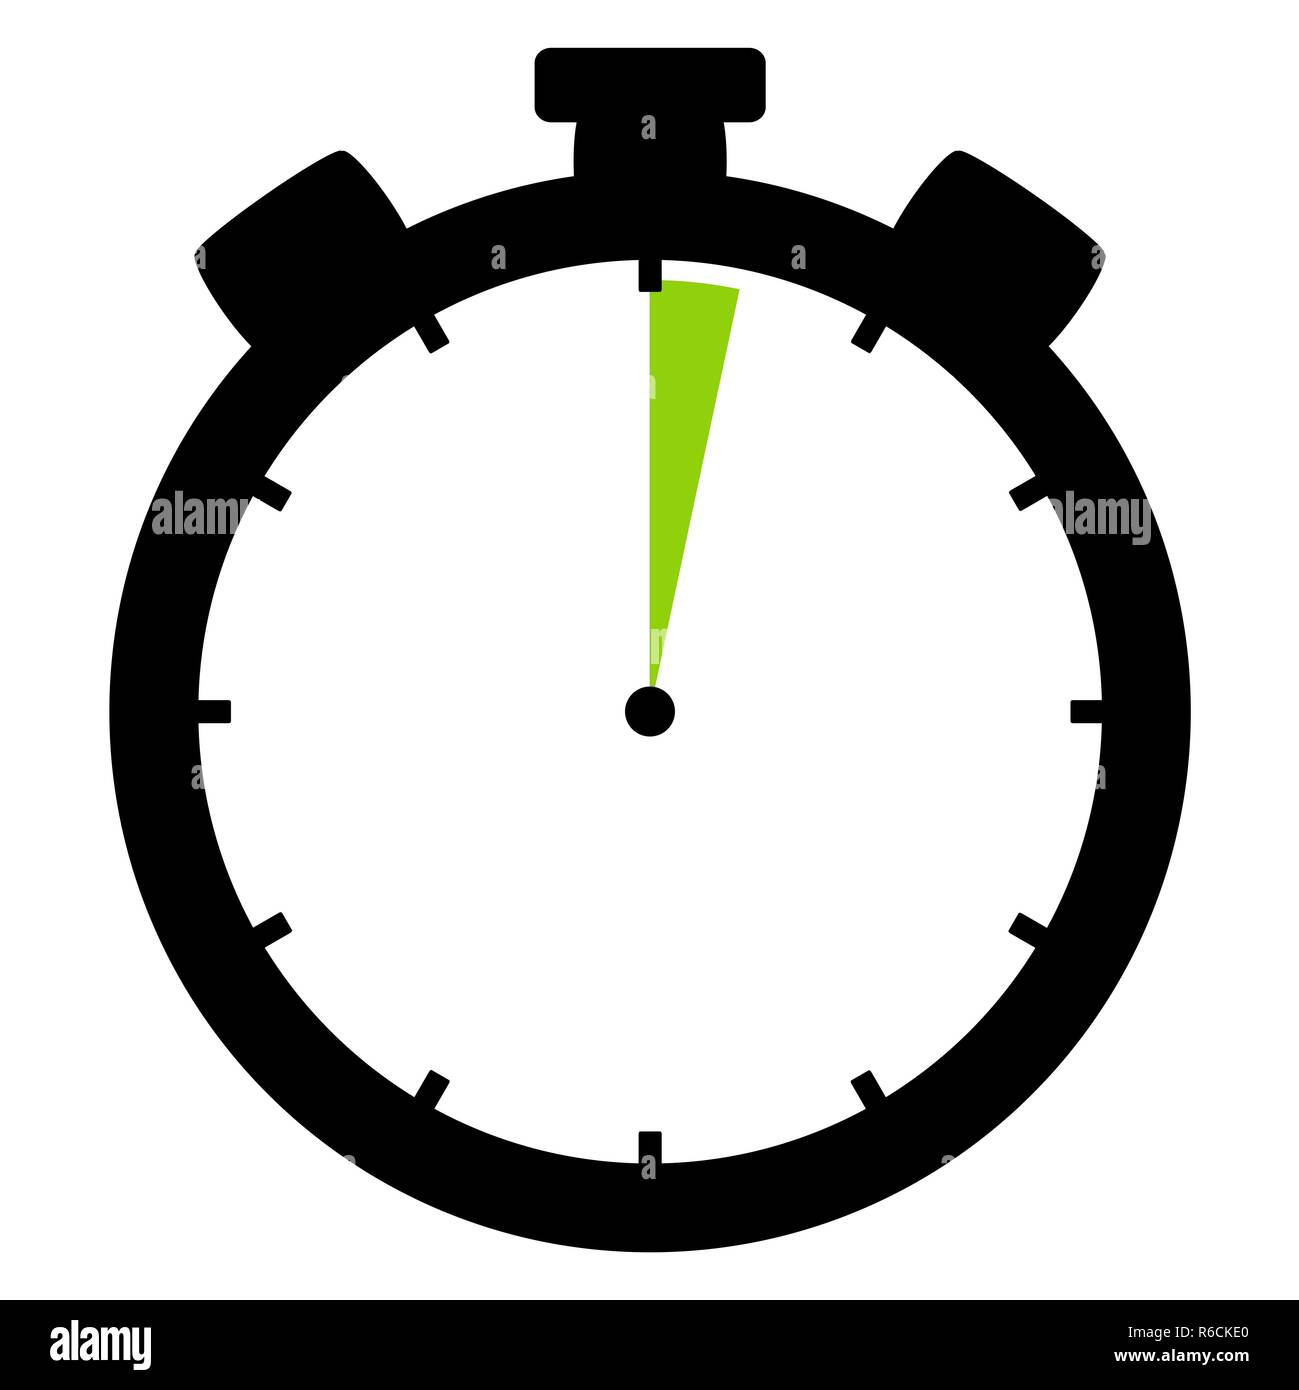 stopwatch icon: 2 minutes or 2 seconds - Stock Image